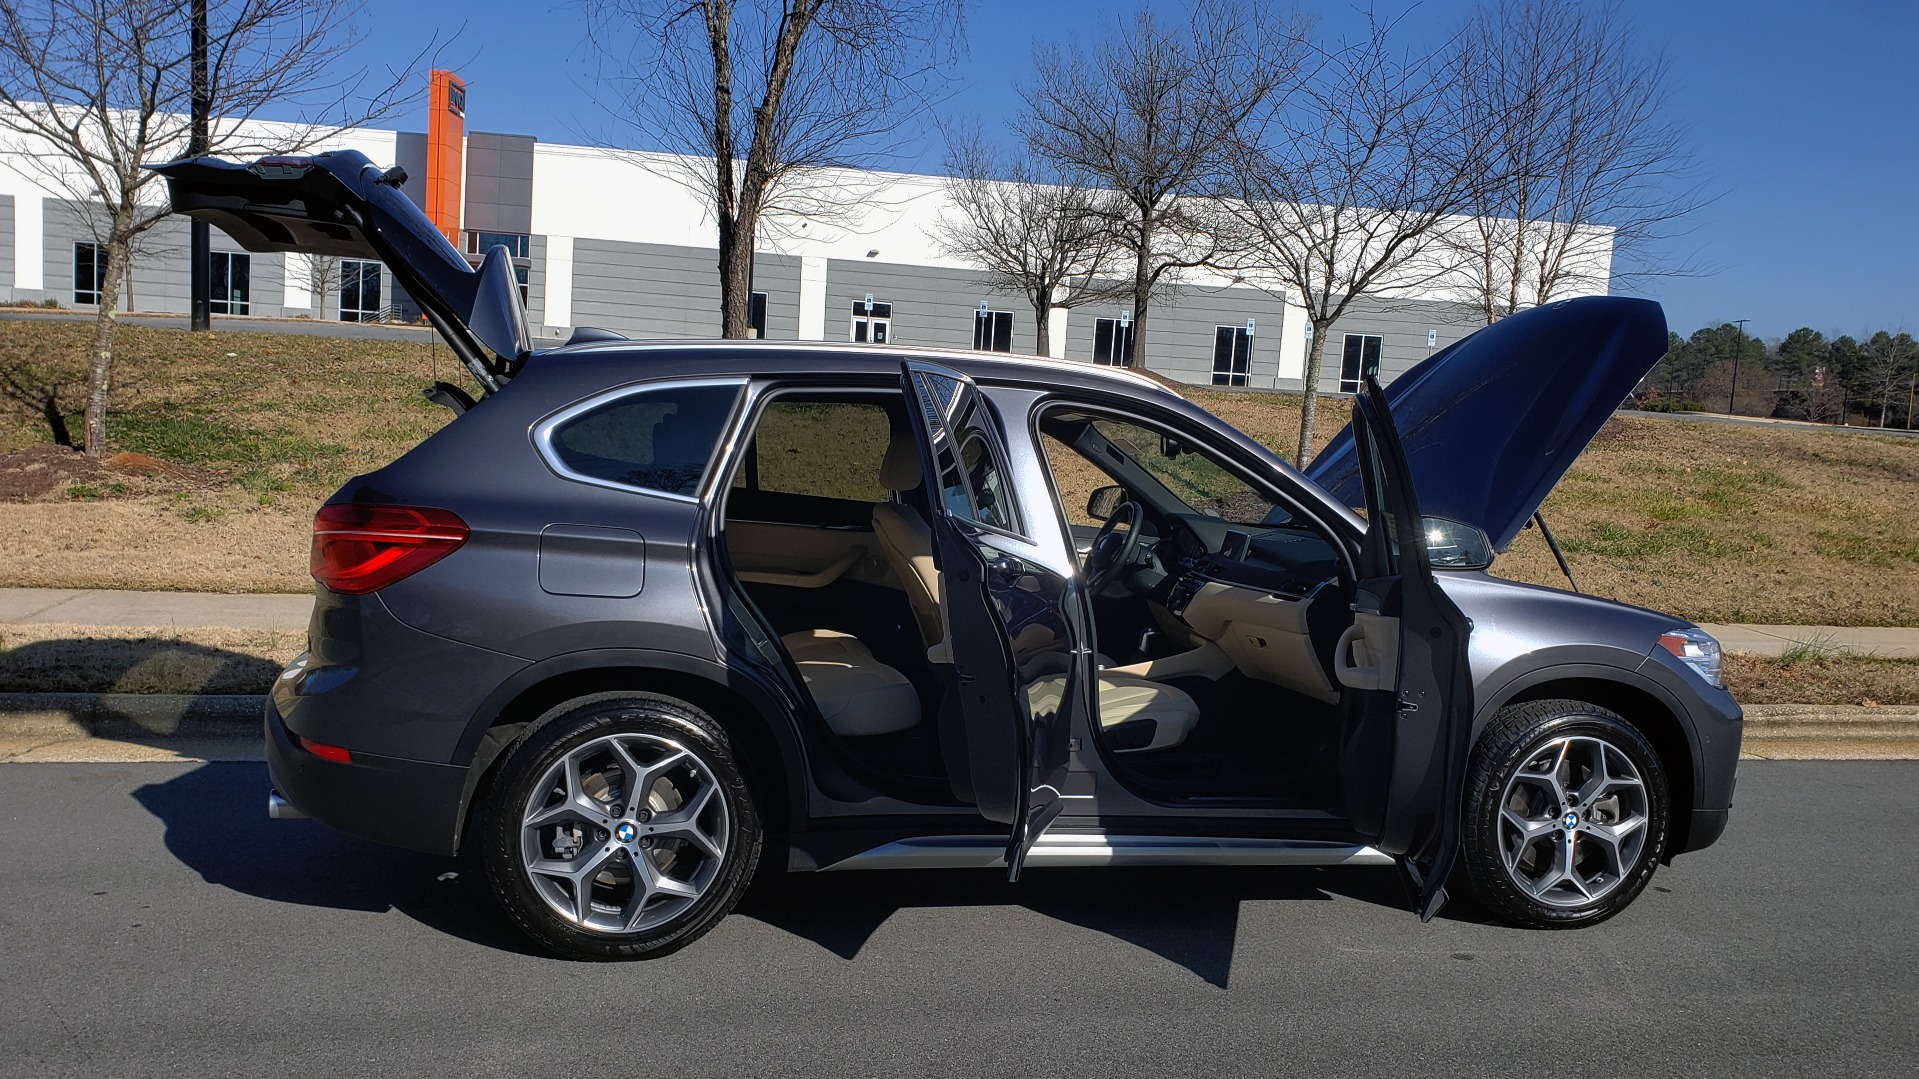 Used 2017 BMW X1 XDRIVE28I / PREM / TECH / DRVR ASST PLUS / COLD WTHR / REARVIEW for sale Sold at Formula Imports in Charlotte NC 28227 10